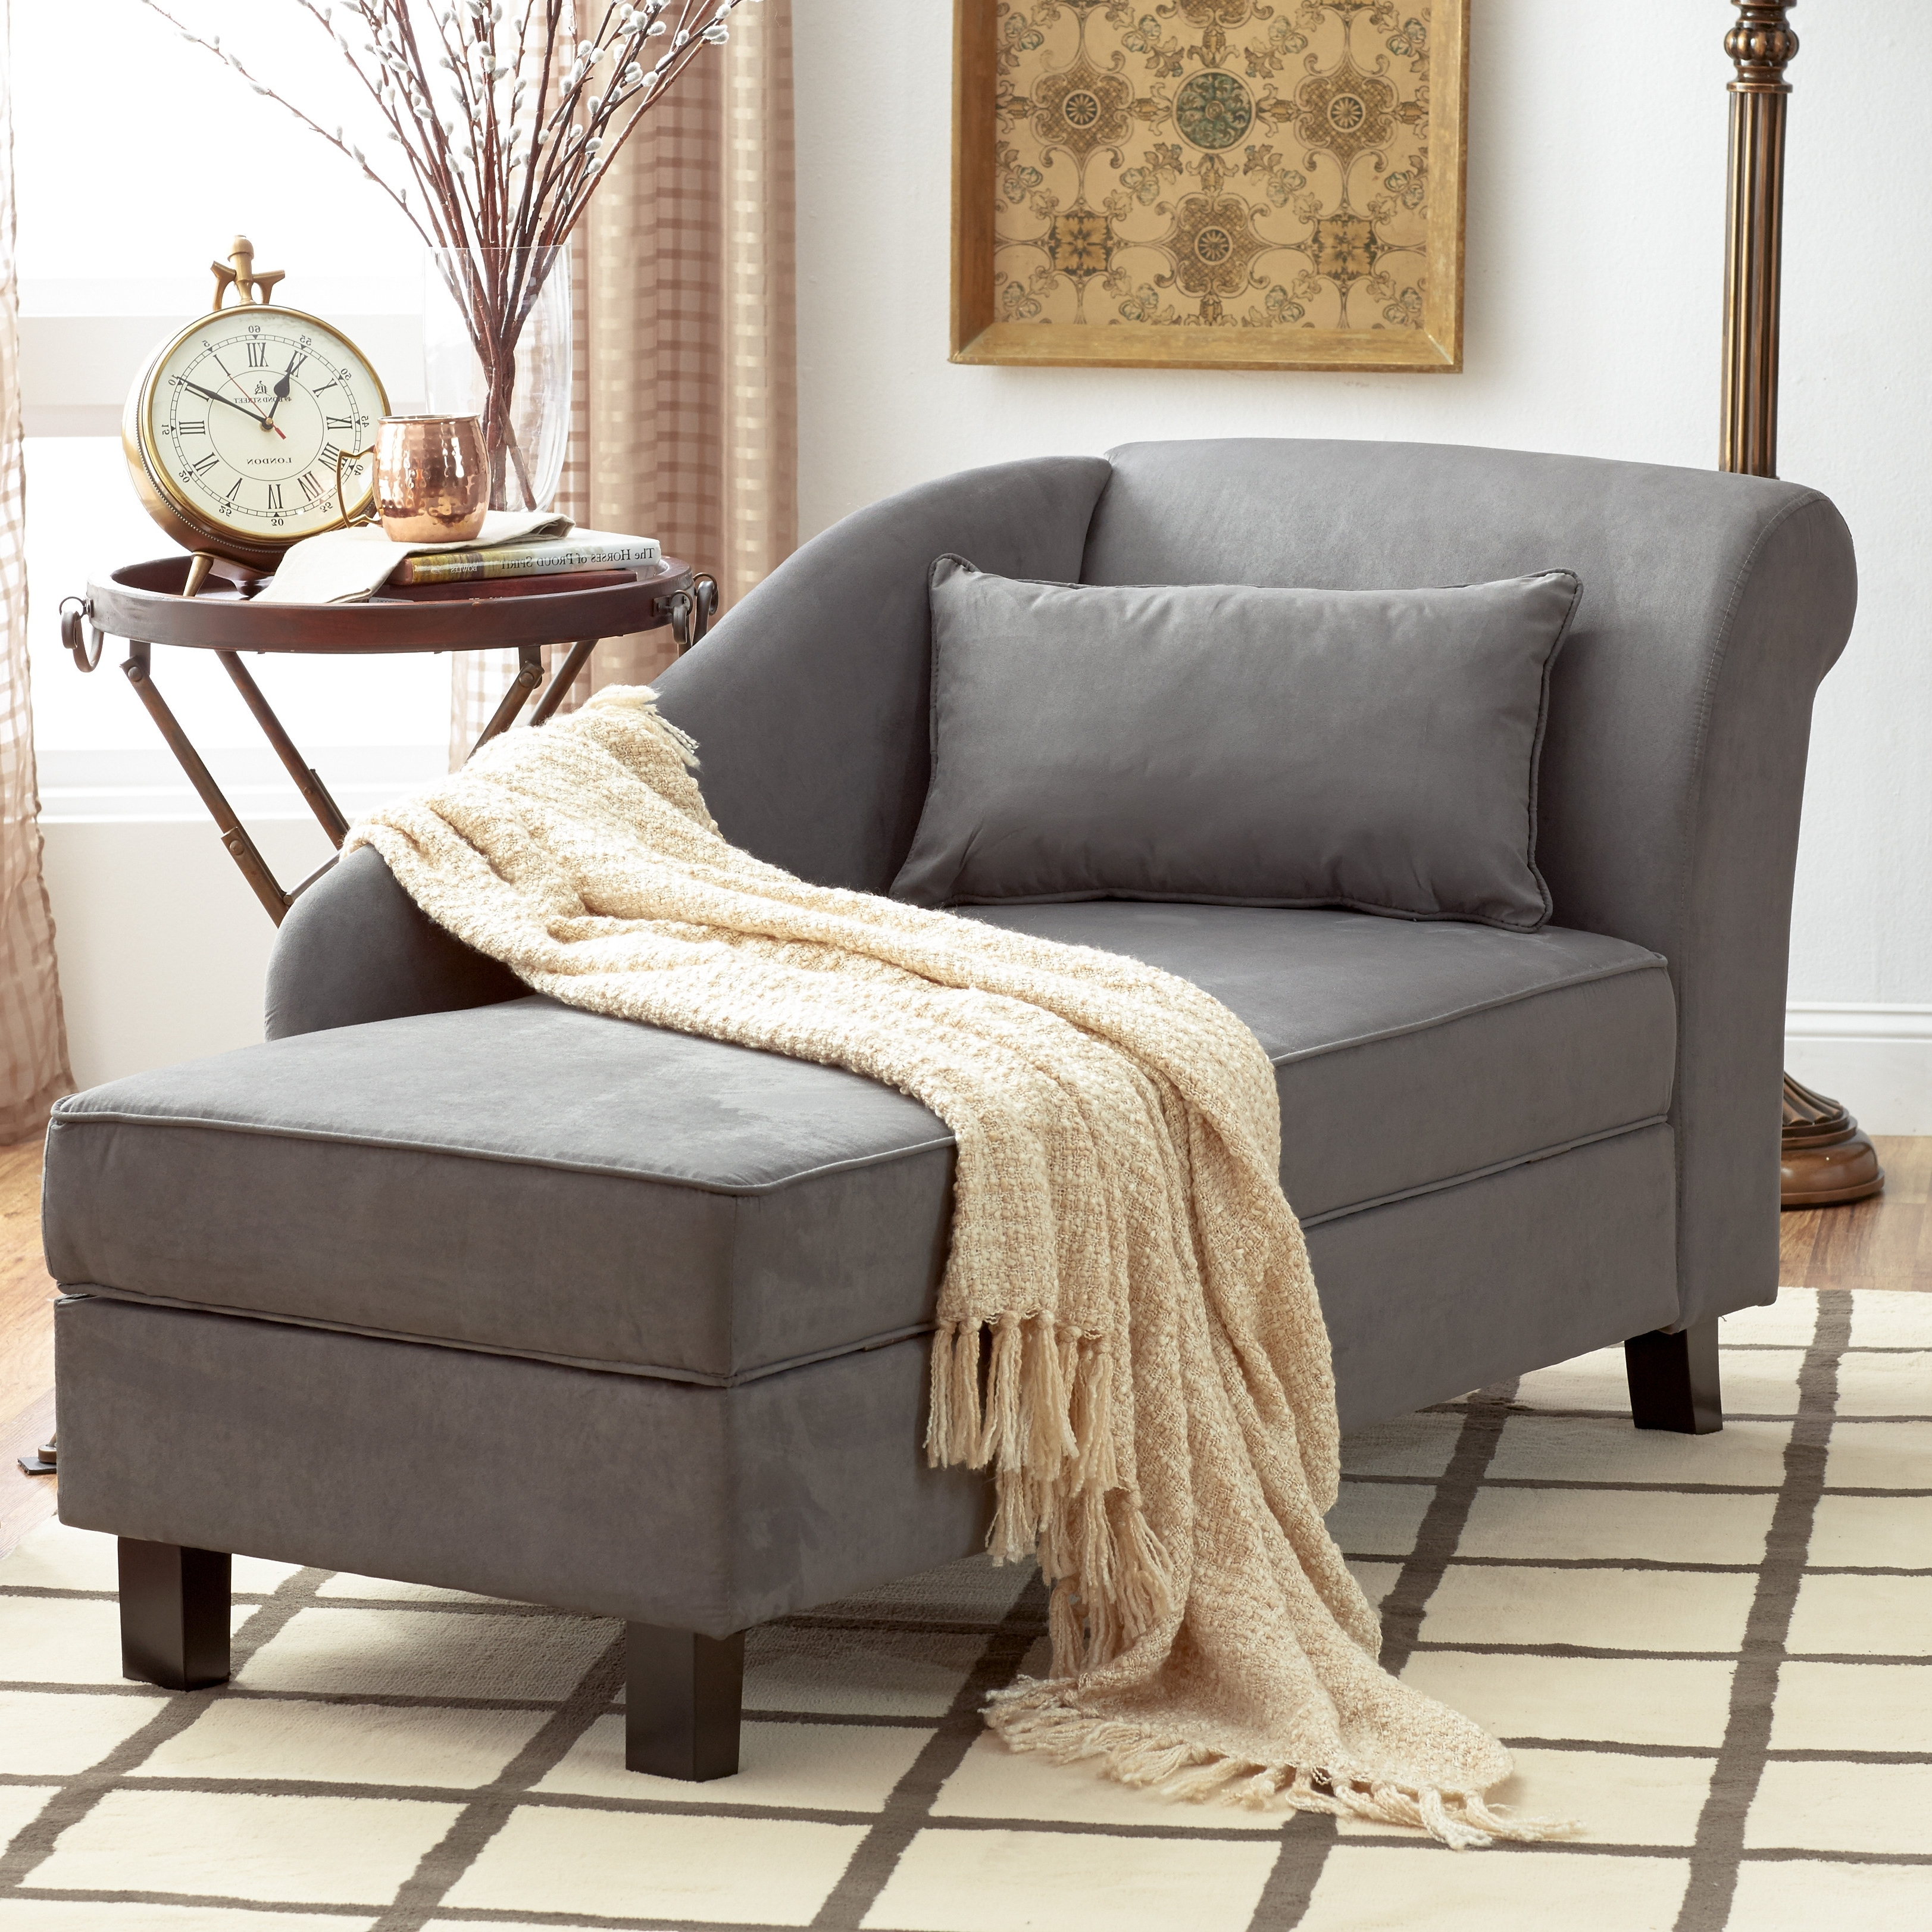 Round Chaise Lounges Pertaining To Recent Lounge Chair Cushion Storage • Lounge Chairs Ideas (View 15 of 15)